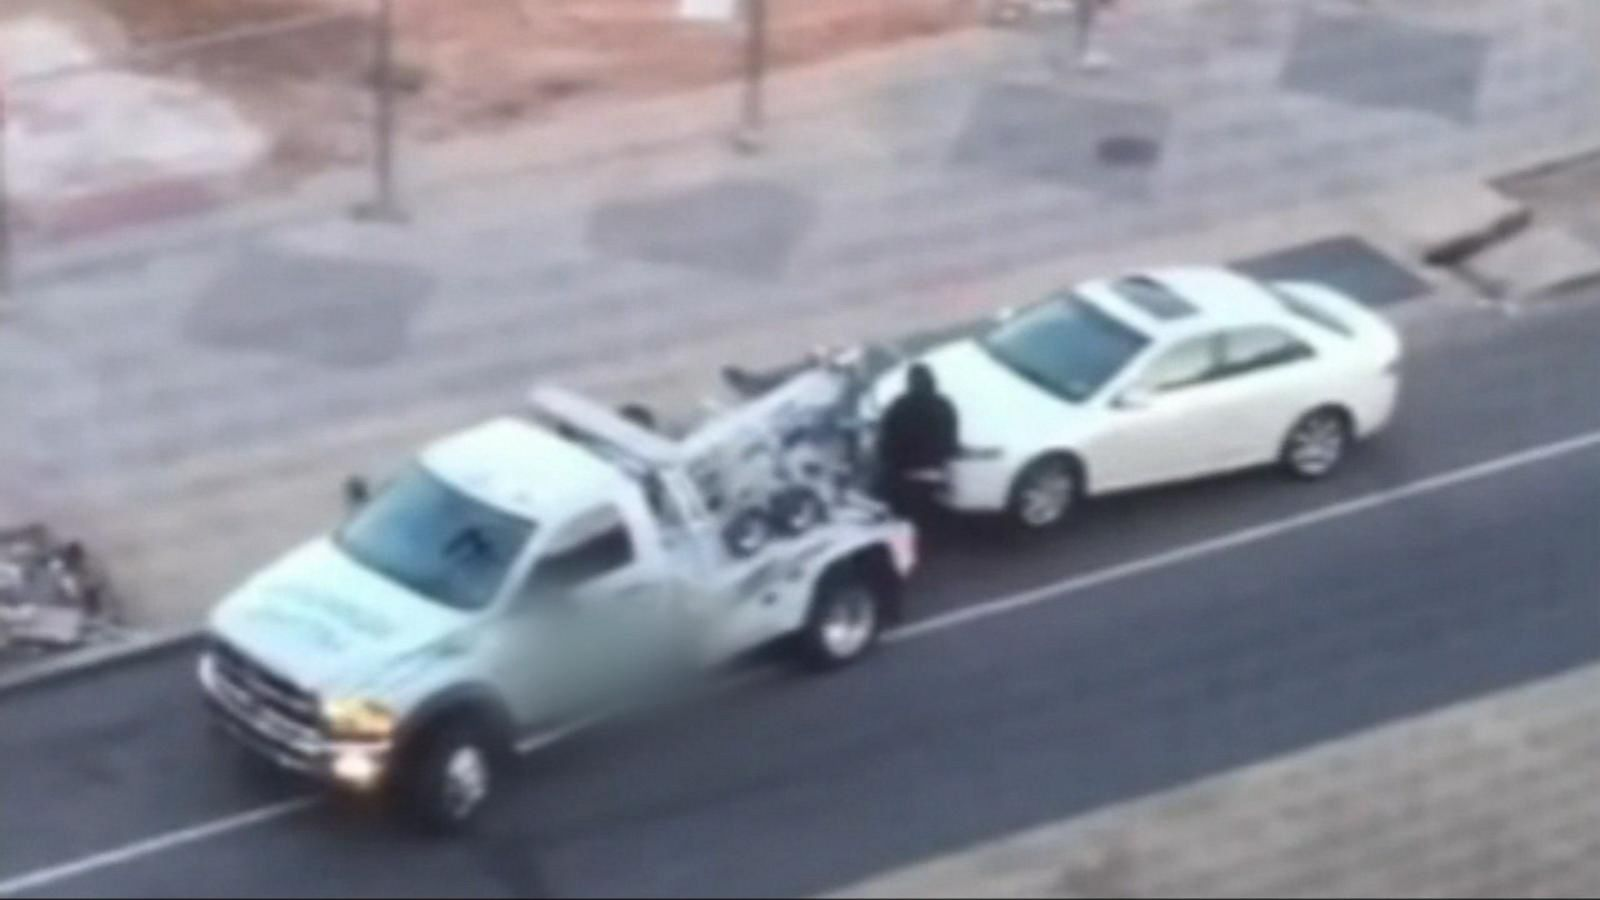 VIDEO: Philadelphia Towing Company Accused of Setting Traps for Unsuspecting Drivers